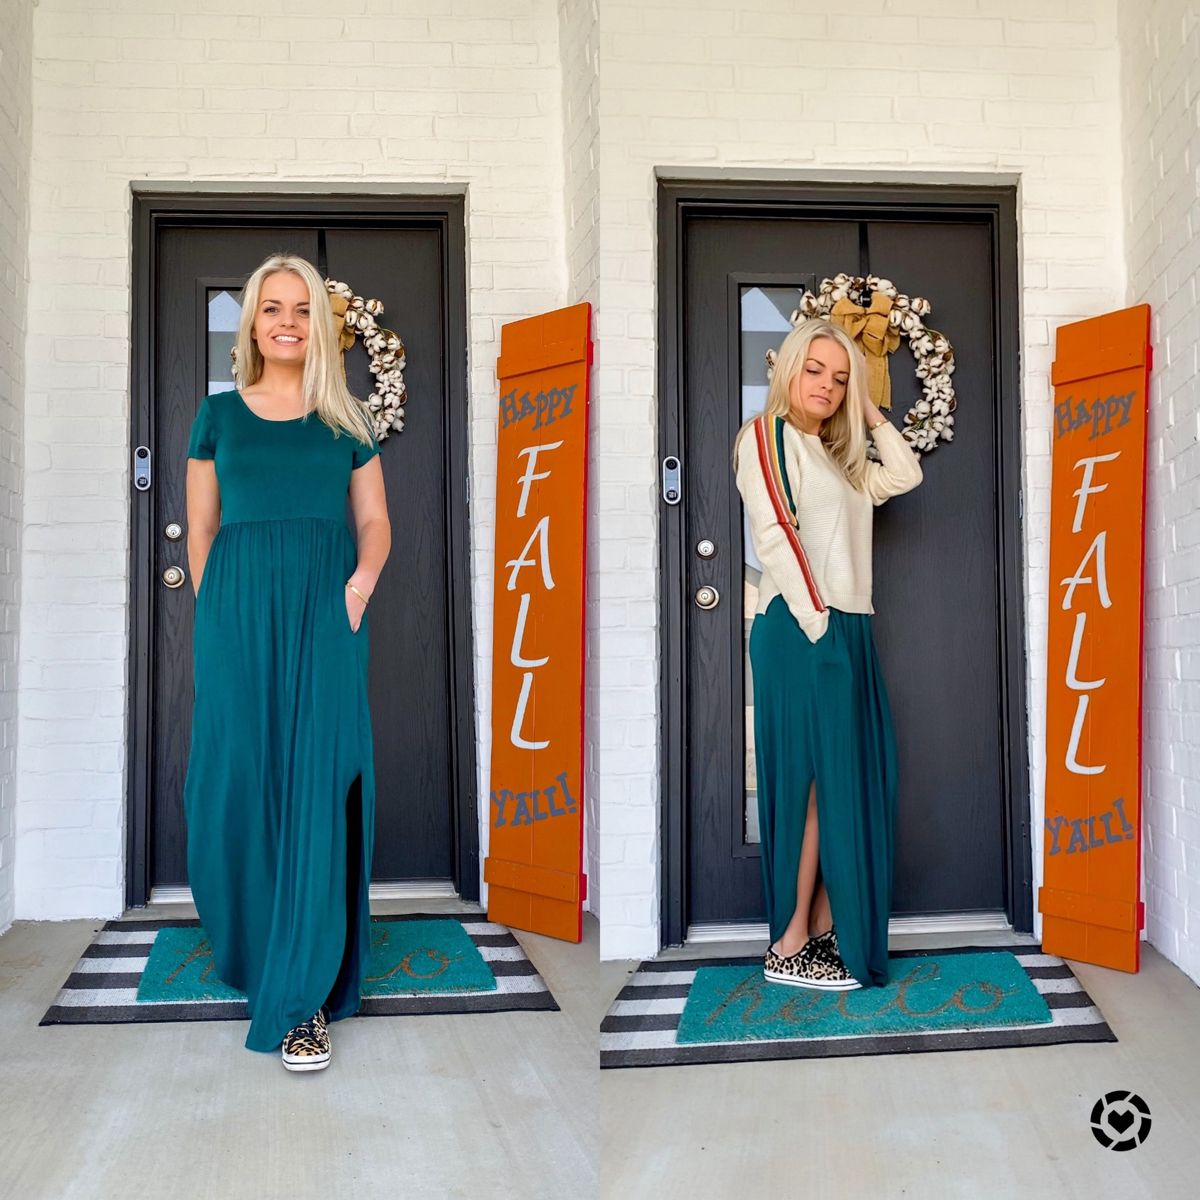 Sweater Over Maxi Dress Outfit Maxi Dresses Fall Maxi Dress Outfit Comfy Maxi Dress [ 1200 x 1200 Pixel ]